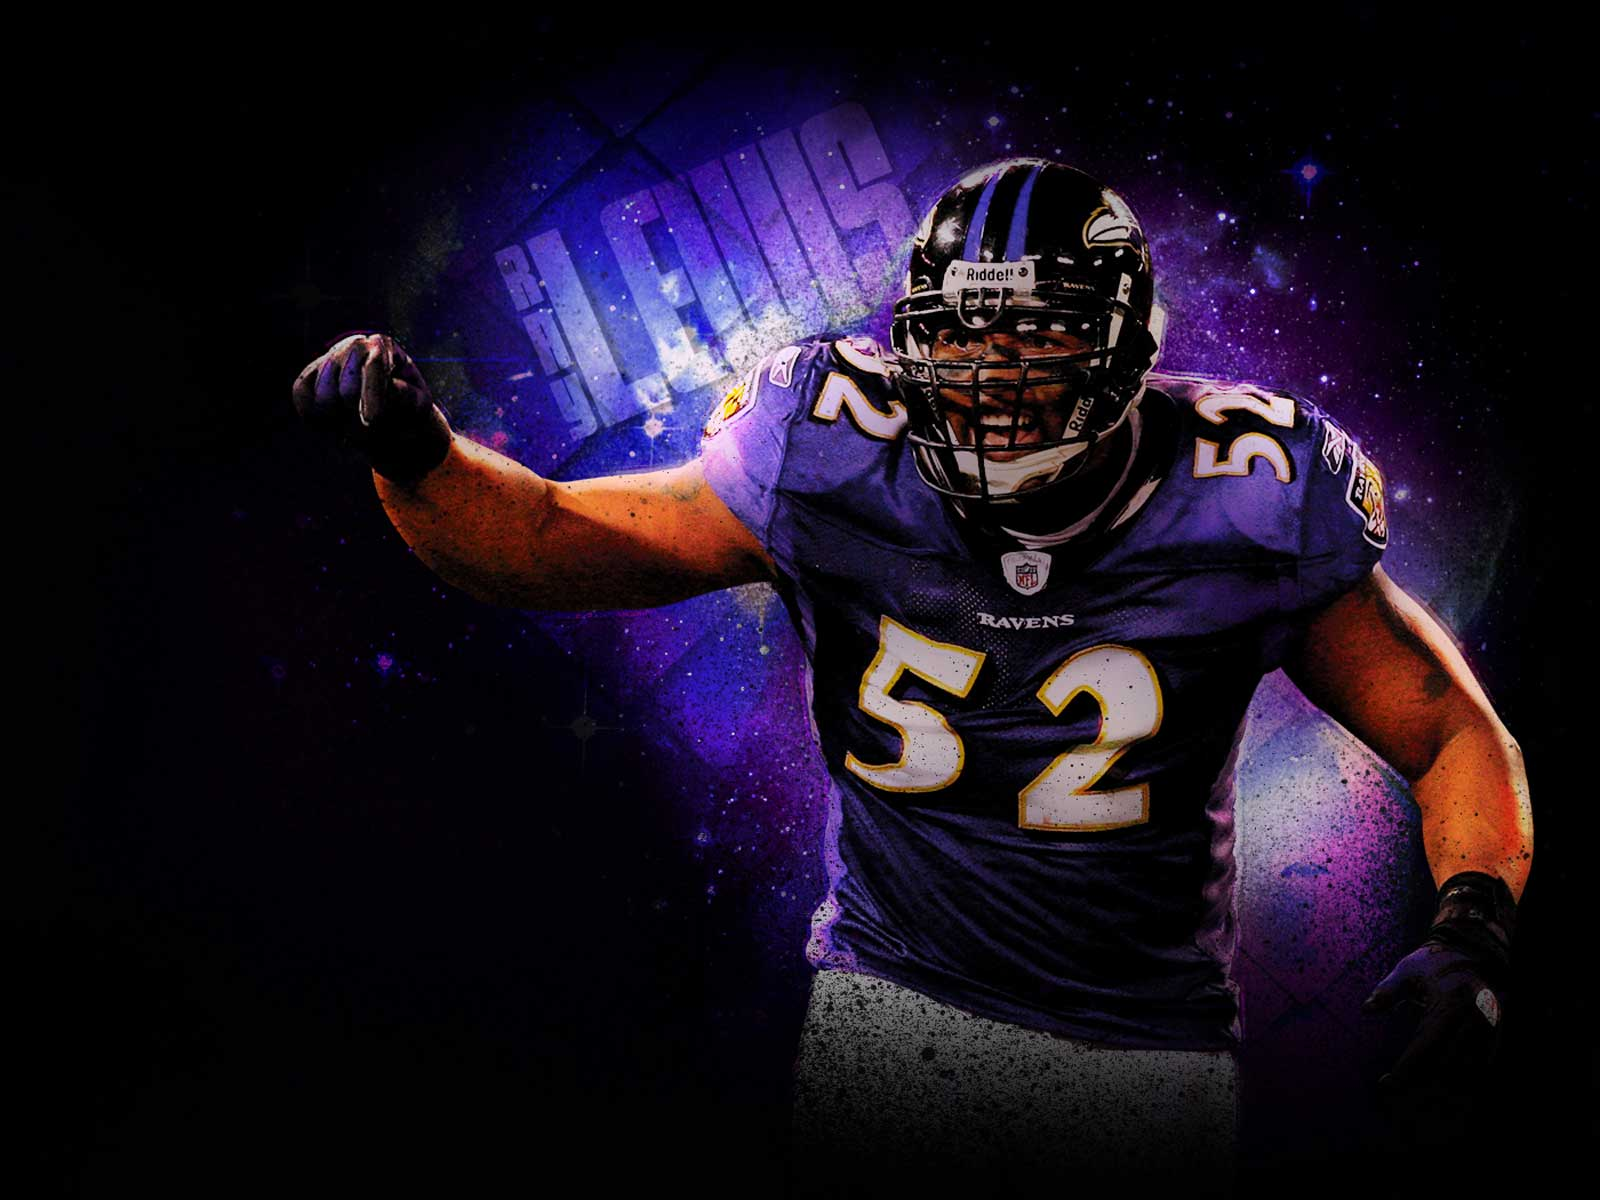 NFL Wallpapers 1600x1200